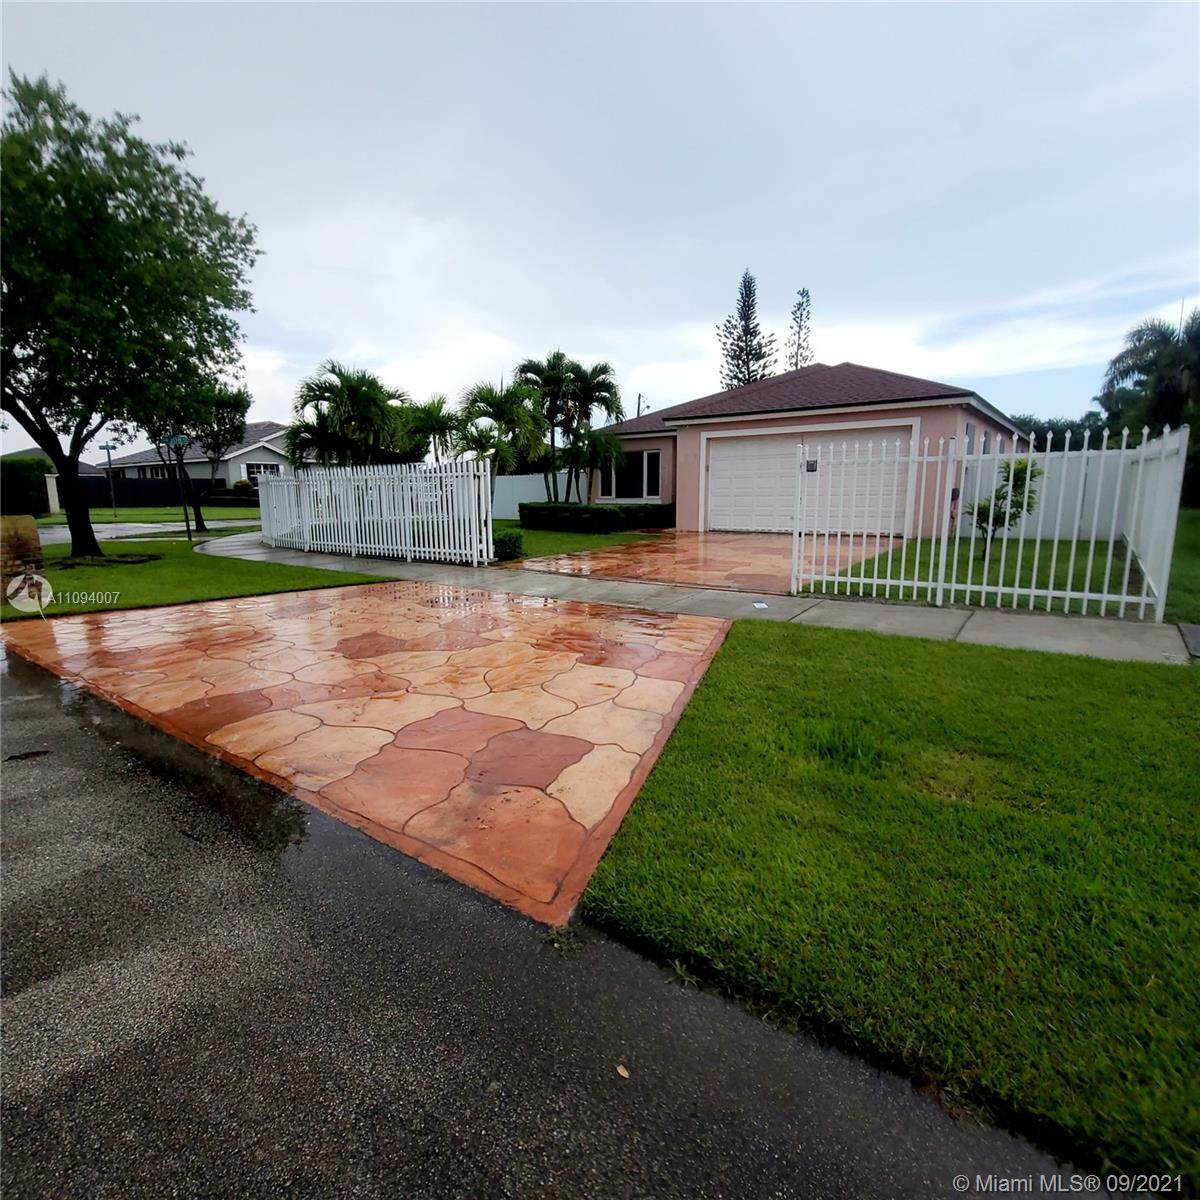 30821 192nd Ave - Photo 1